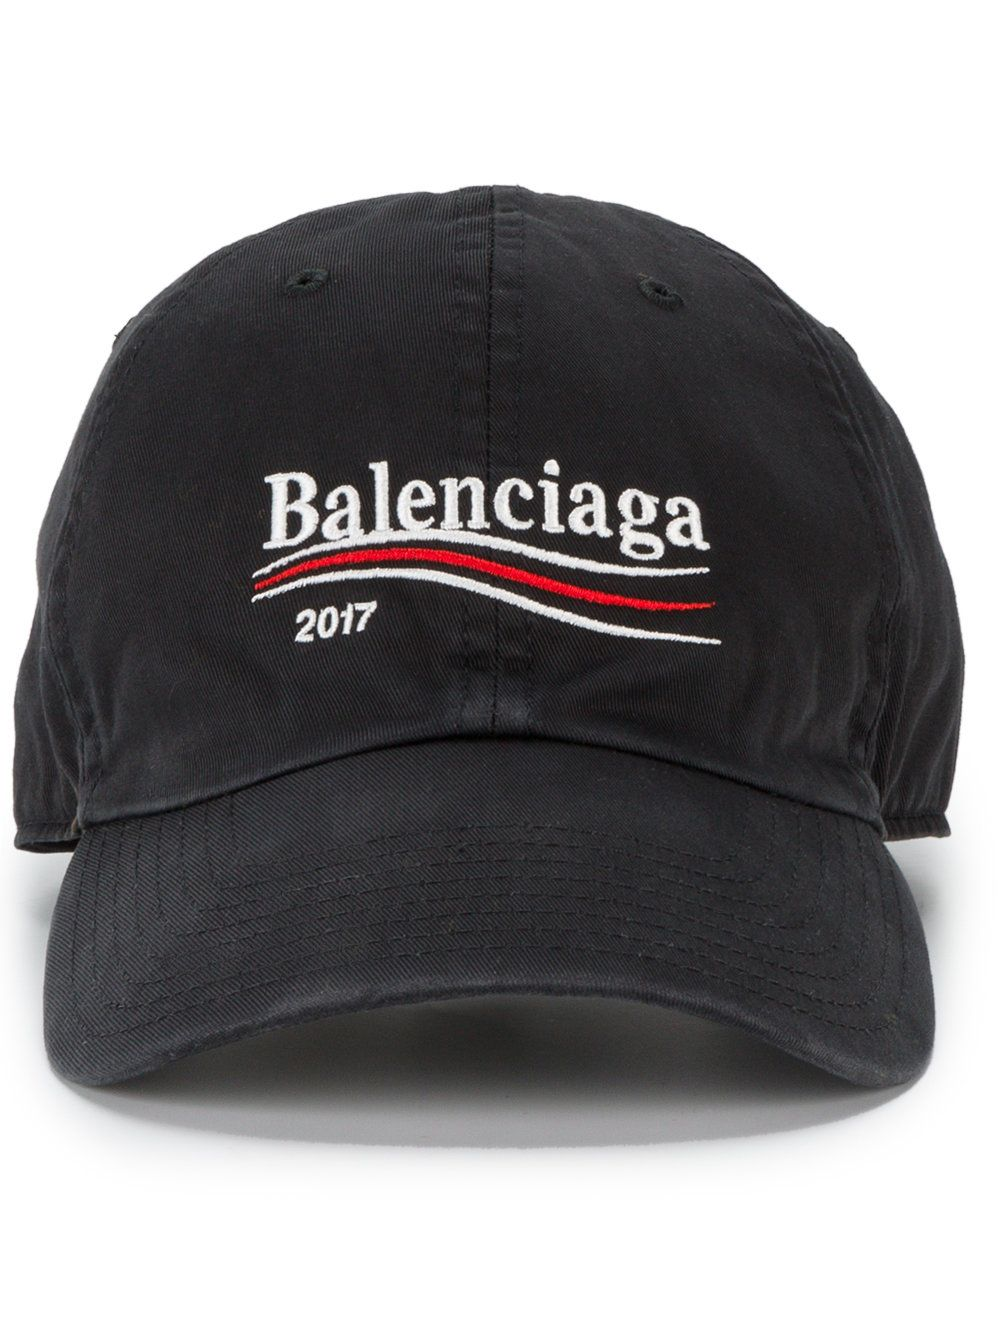 c936ed1b Balenciaga 2017 baseball cap | STYL3Z Guide - Hottest Women & Men's ...